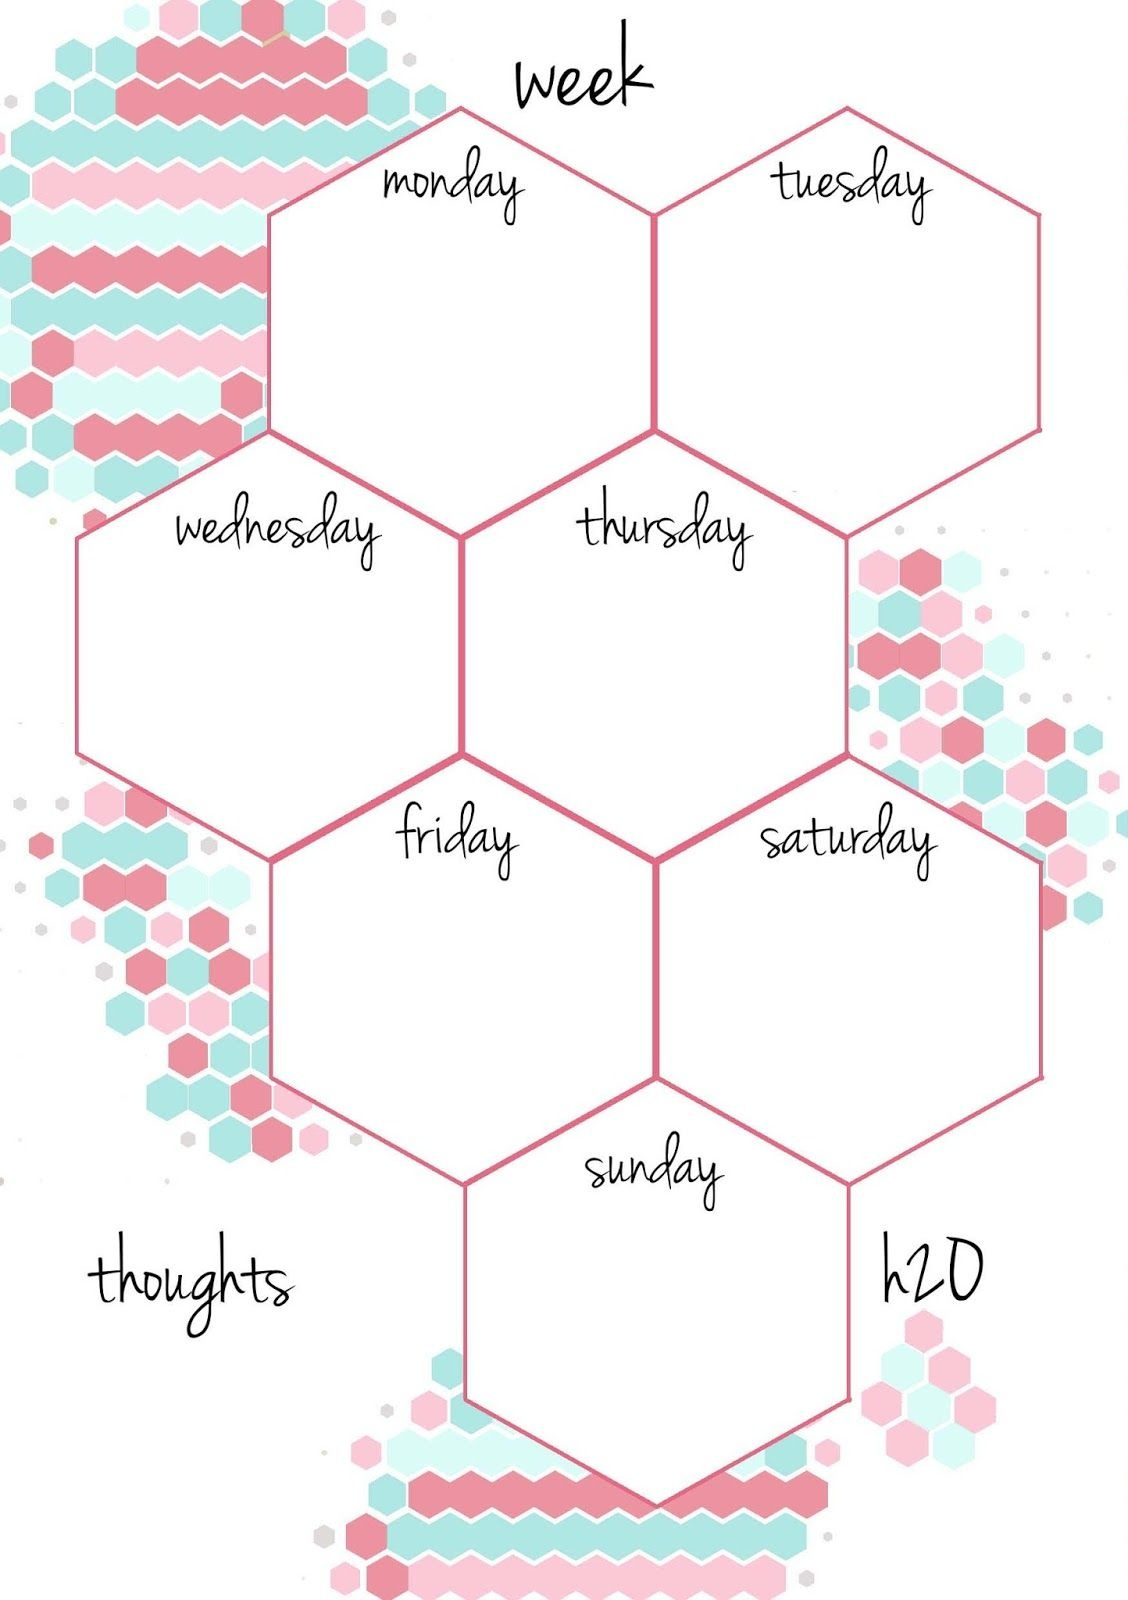 Pb And J Studio: Free Printable Planner Inserts Candy Hexagon In A5 - Free Printable Organizer 2017